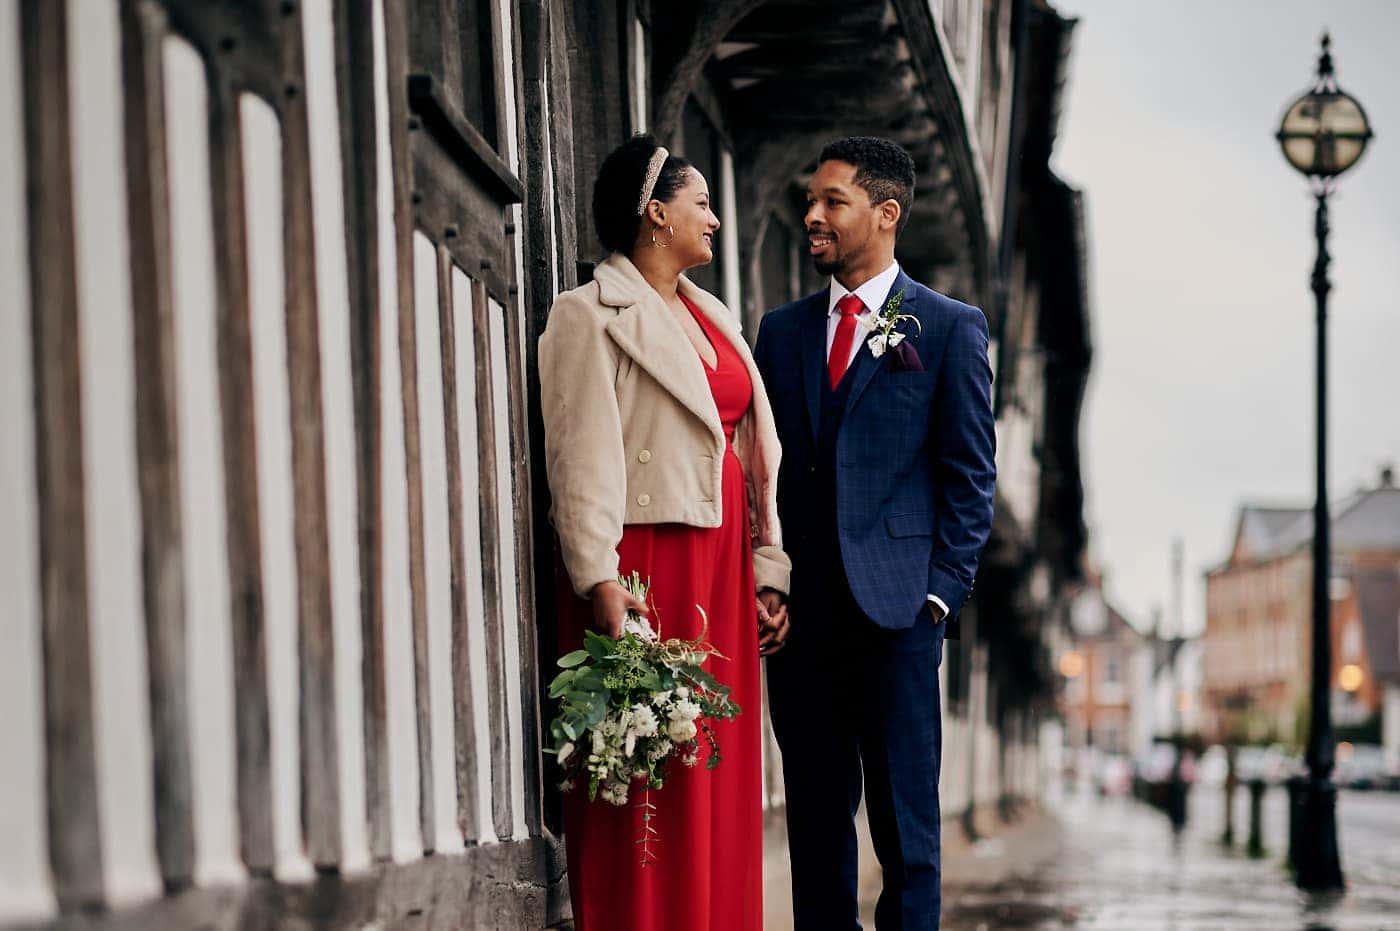 Bride and groom holding hands next to old half-timber building in Stratford-upon-Avon